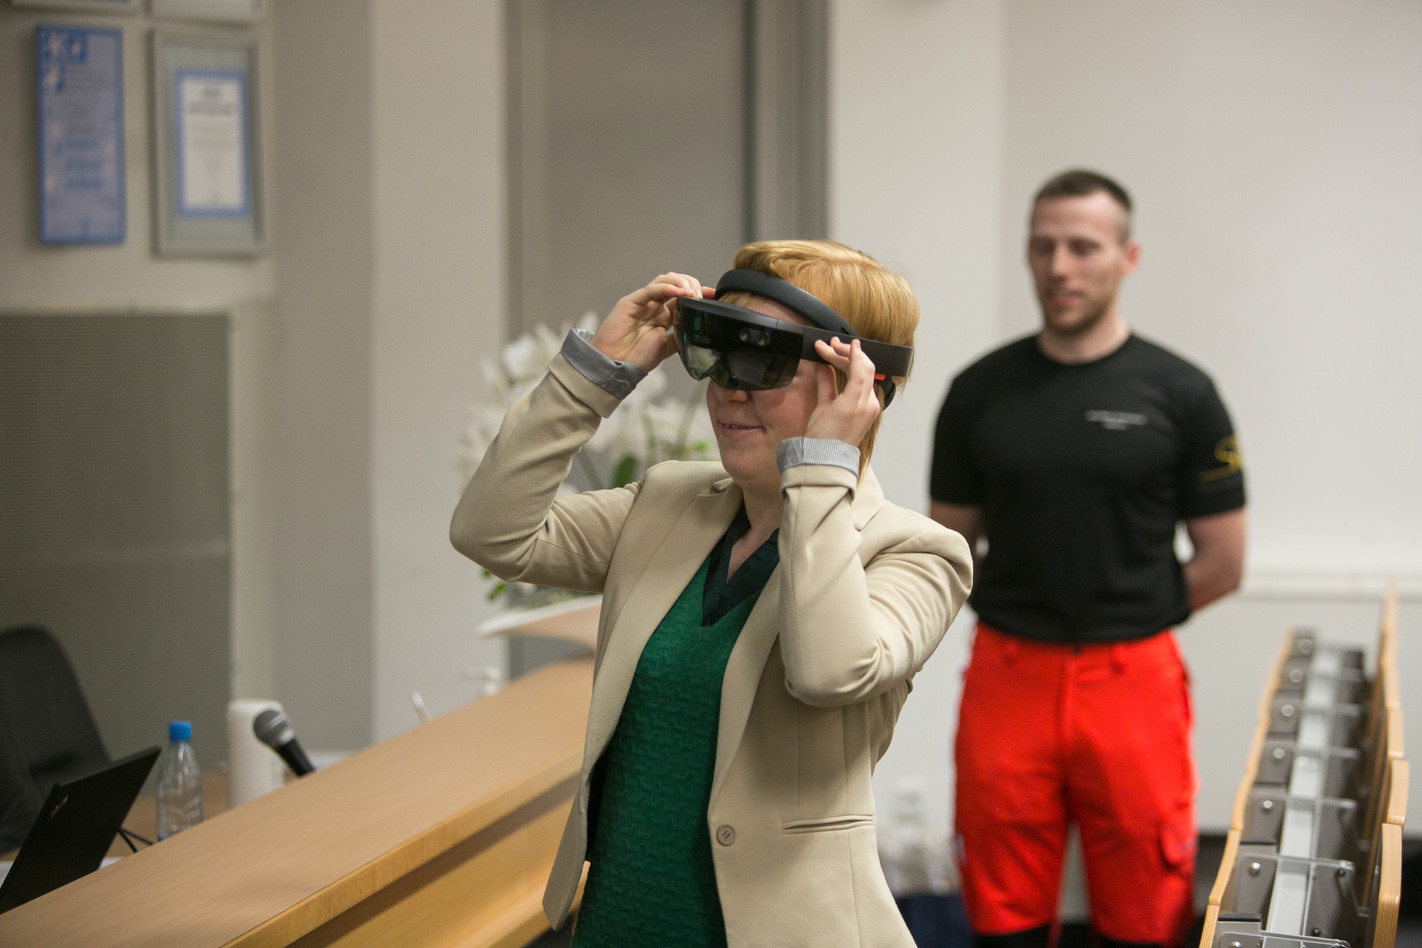 Katrien Danhieux trying out augmented reality glasses